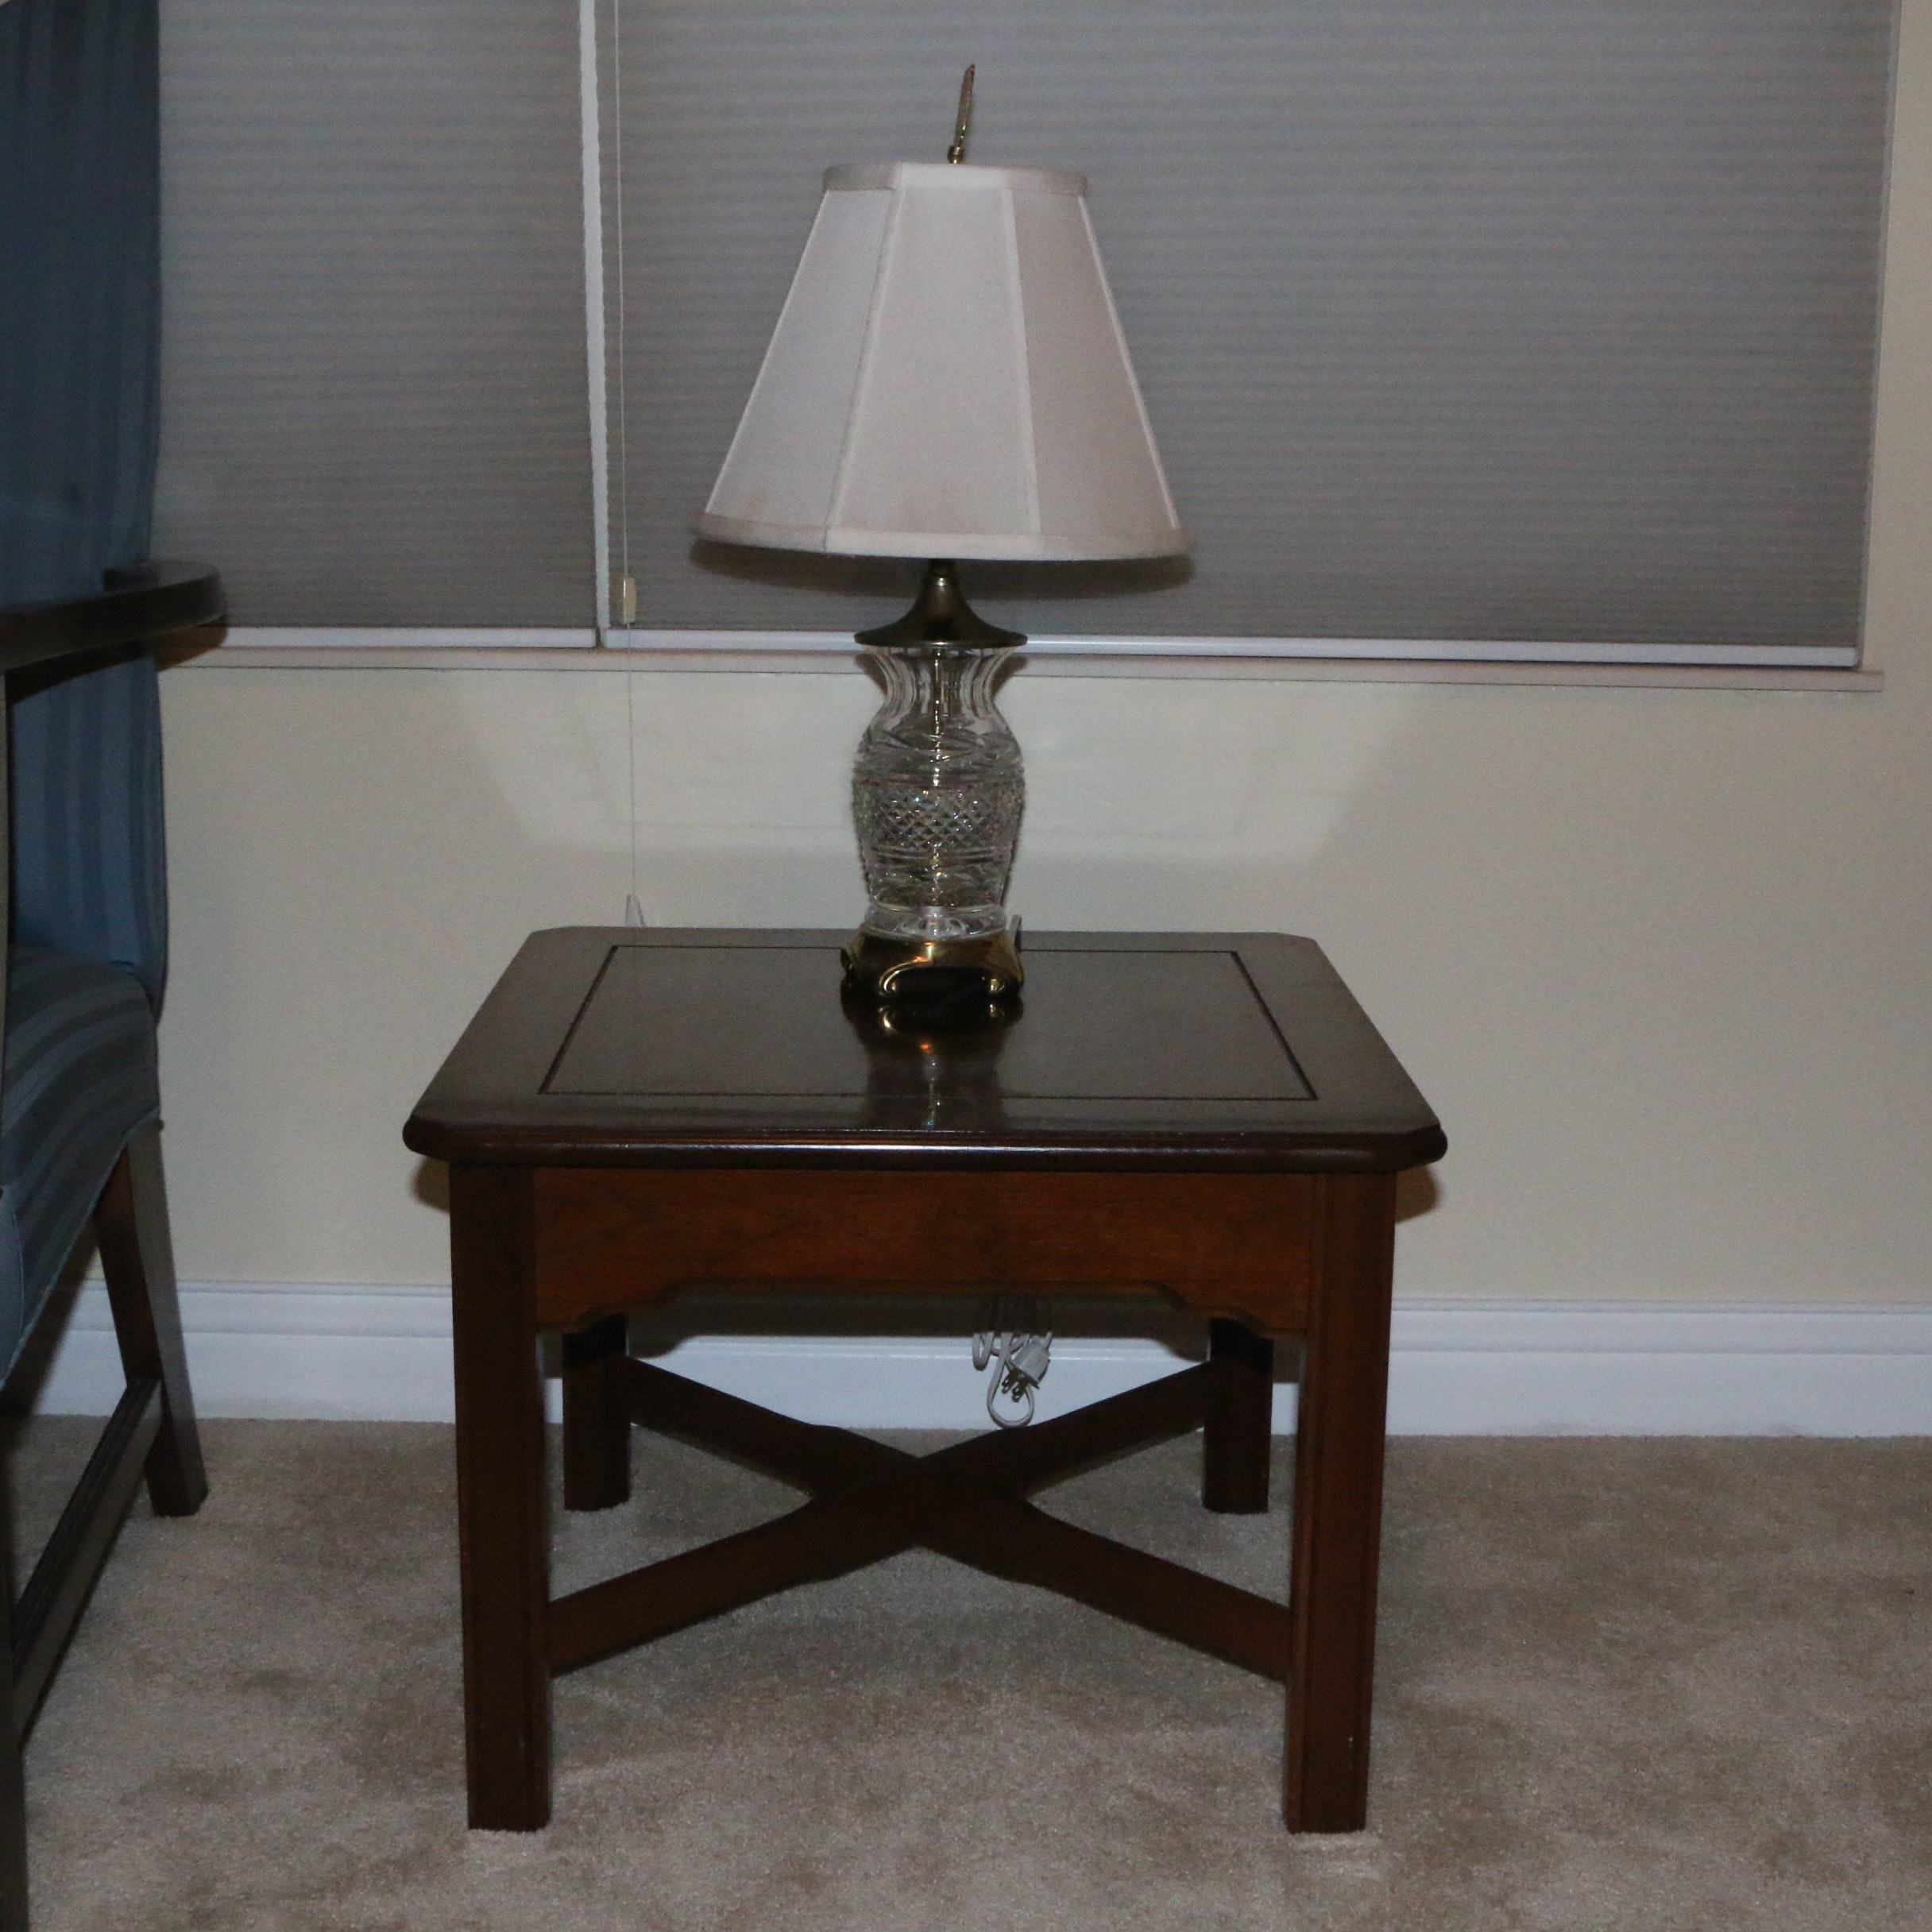 Side Table by Ellsworth of Willoughby with Table Lamp